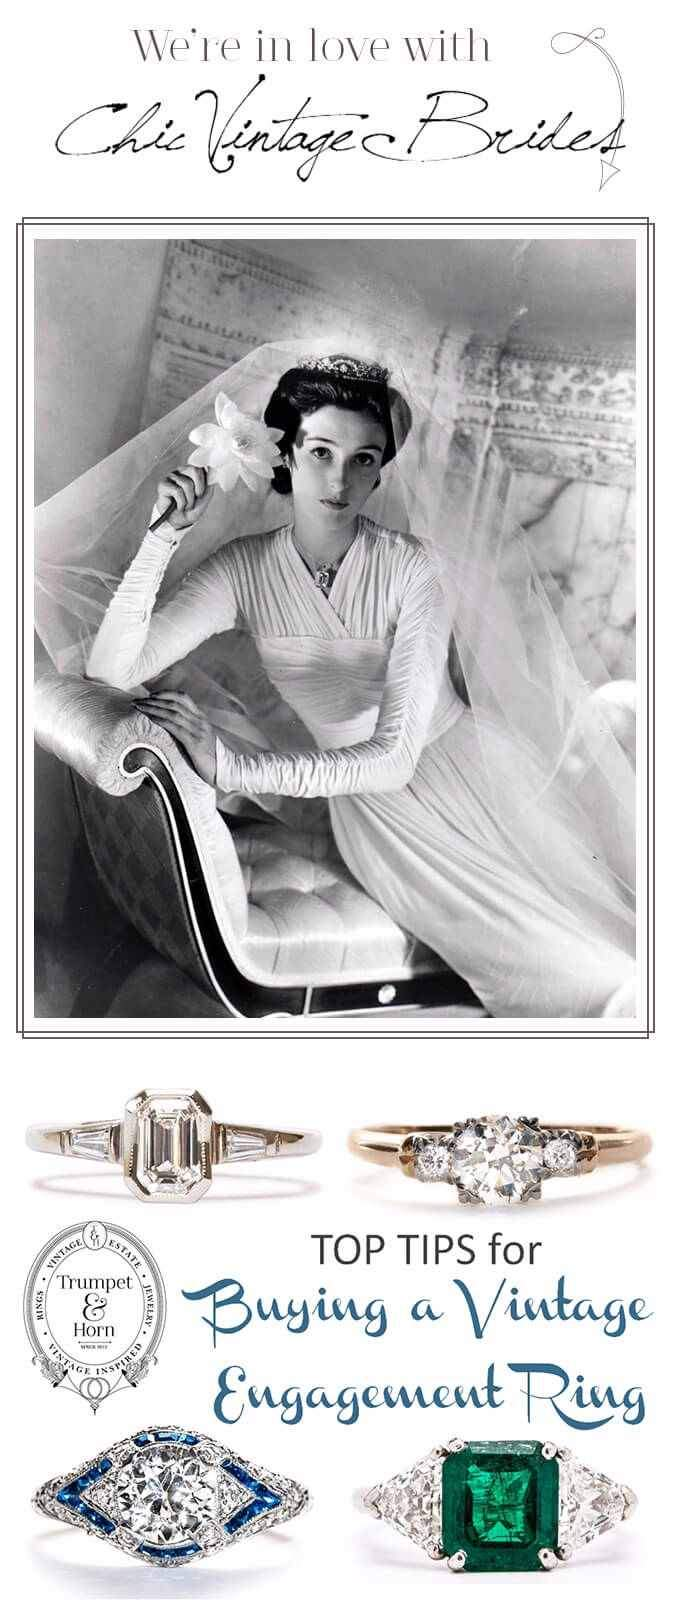 T&H Loves Chic Vintage Brides